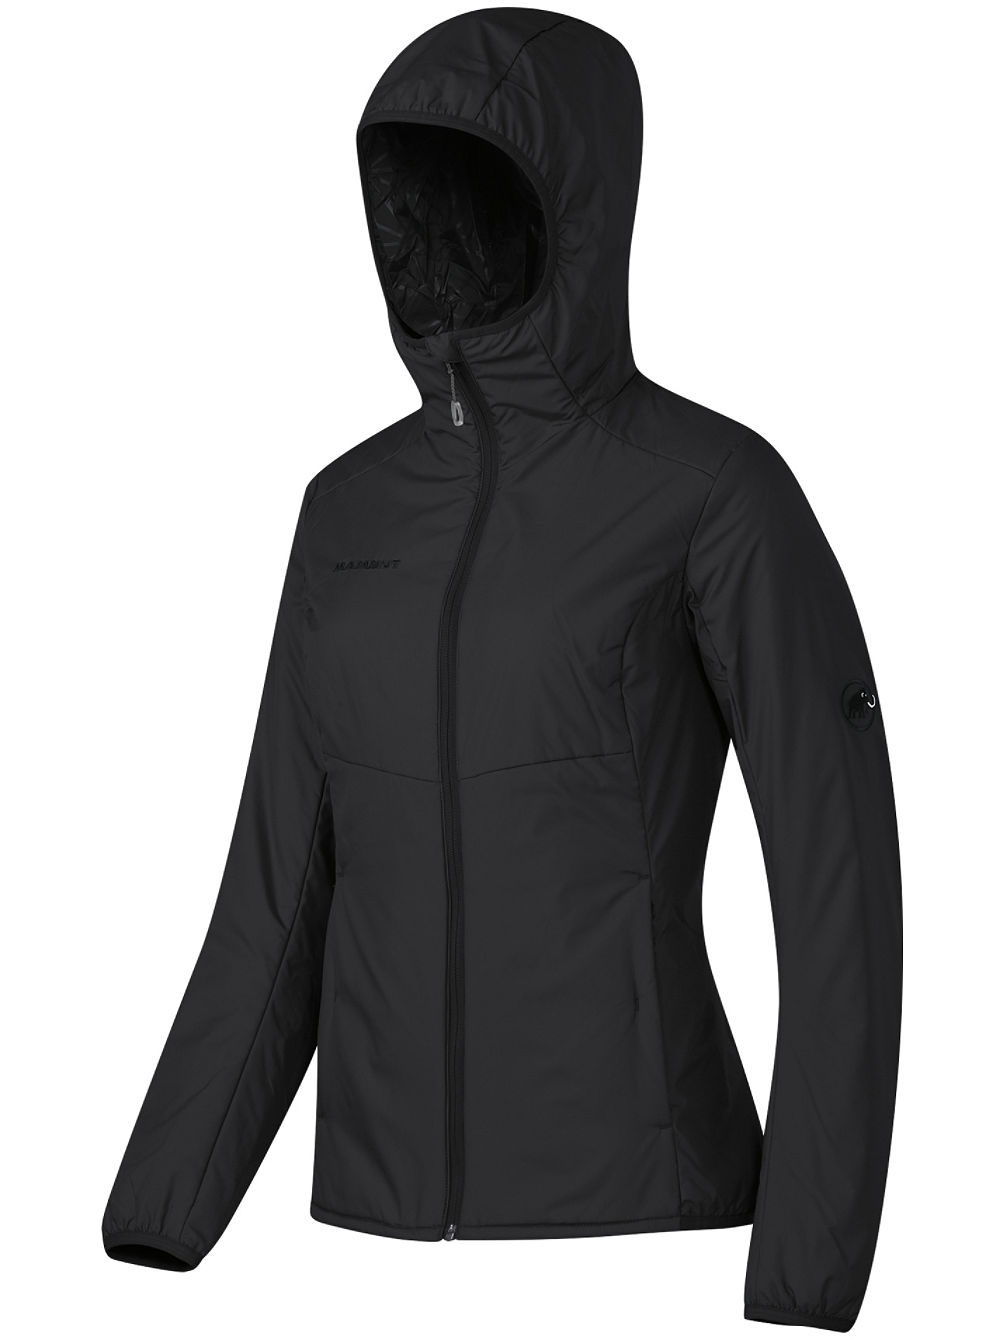 Runbold Advanced In Hooded Outdoor Jacke